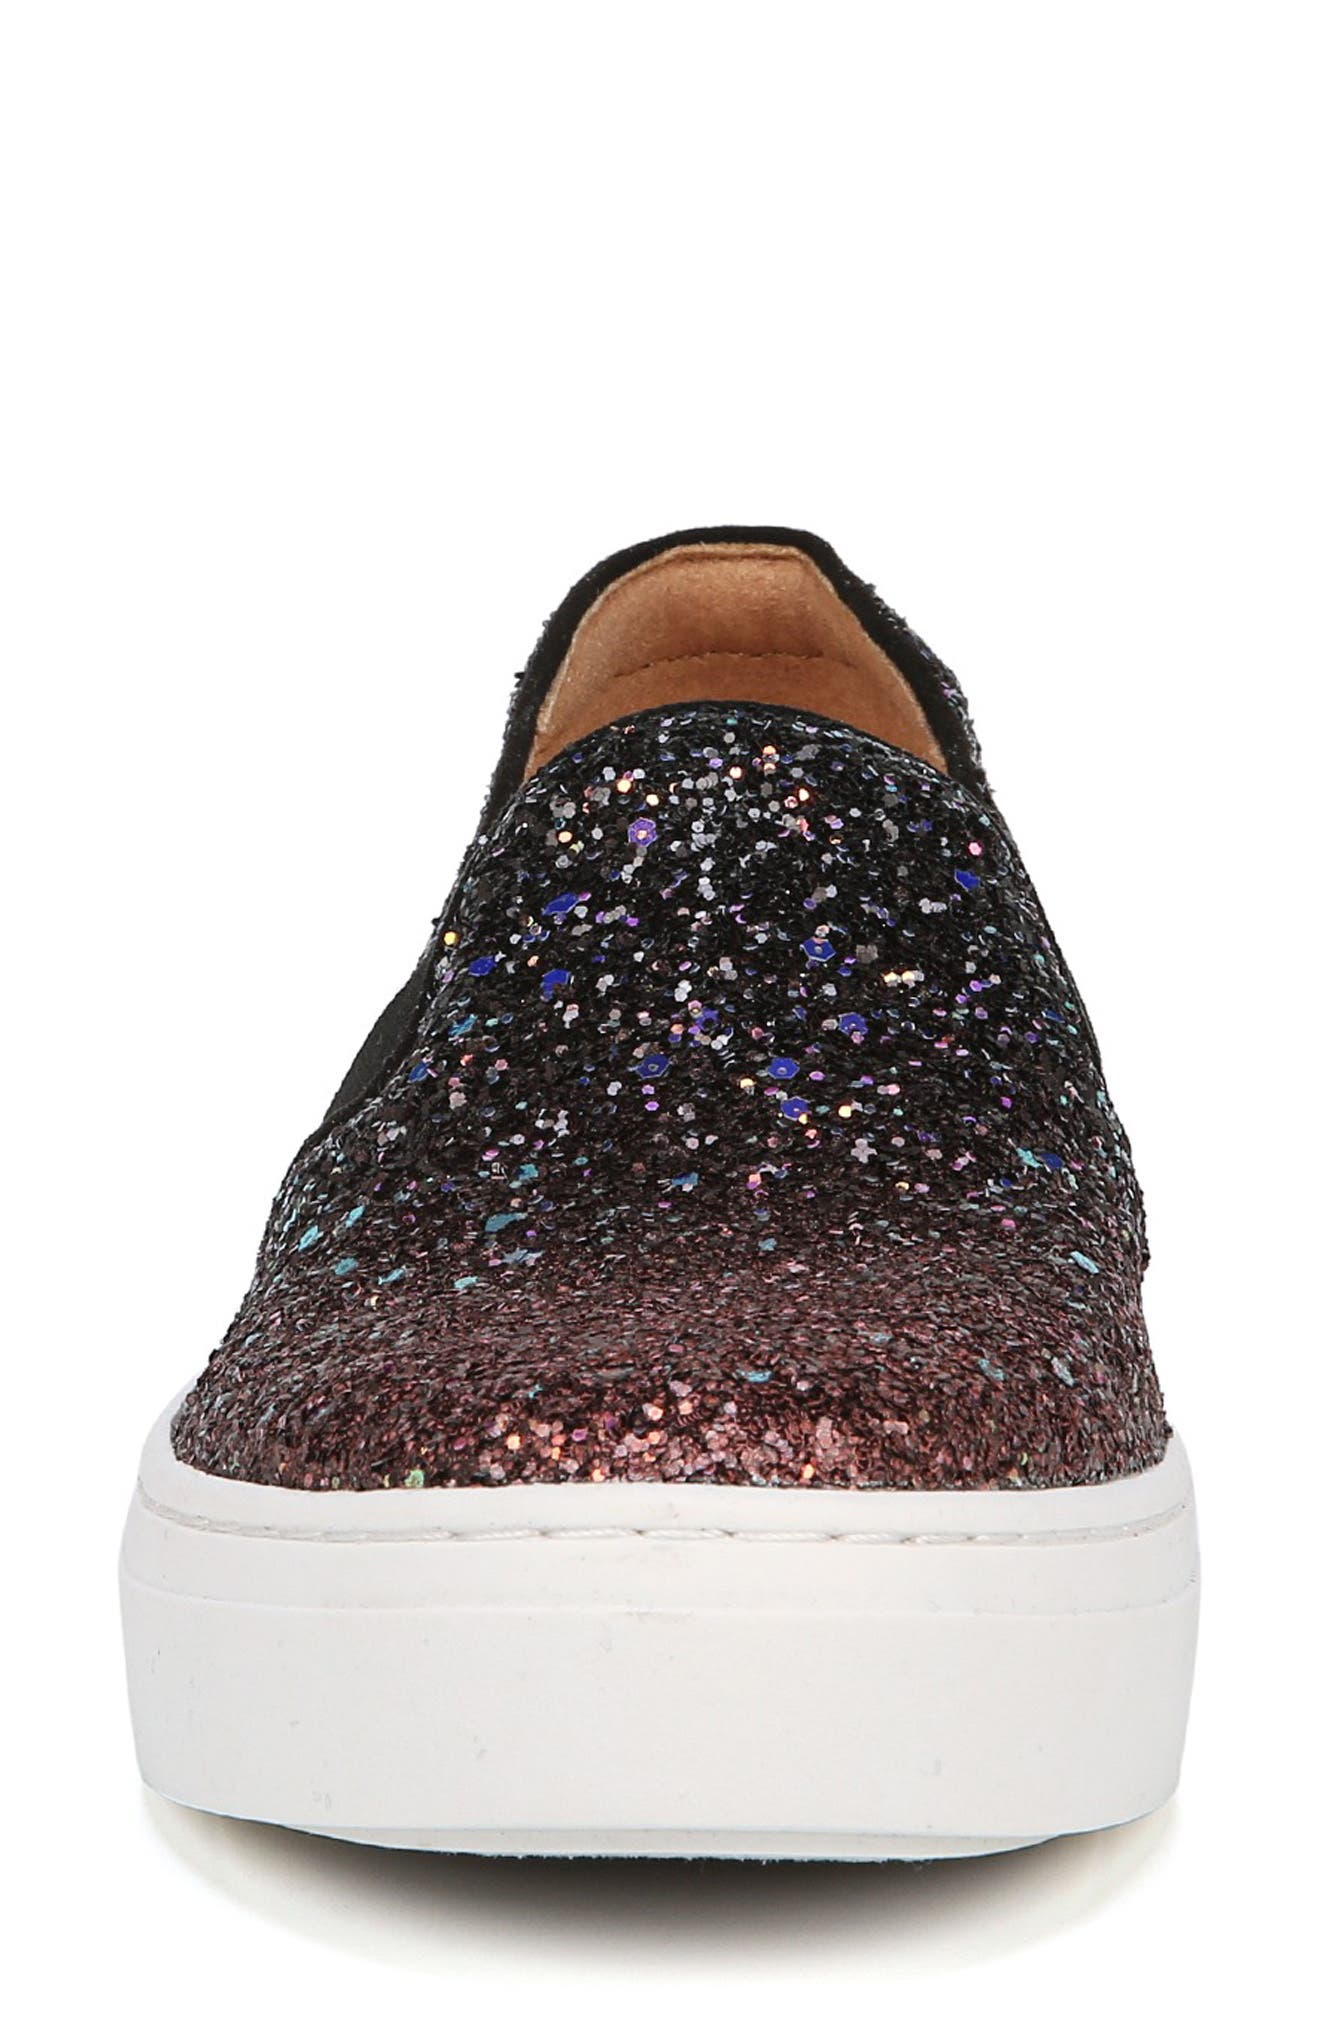 Carly Slip-On Sneaker,                             Alternate thumbnail 3, color,                             MULTI GLITTER FABRIC